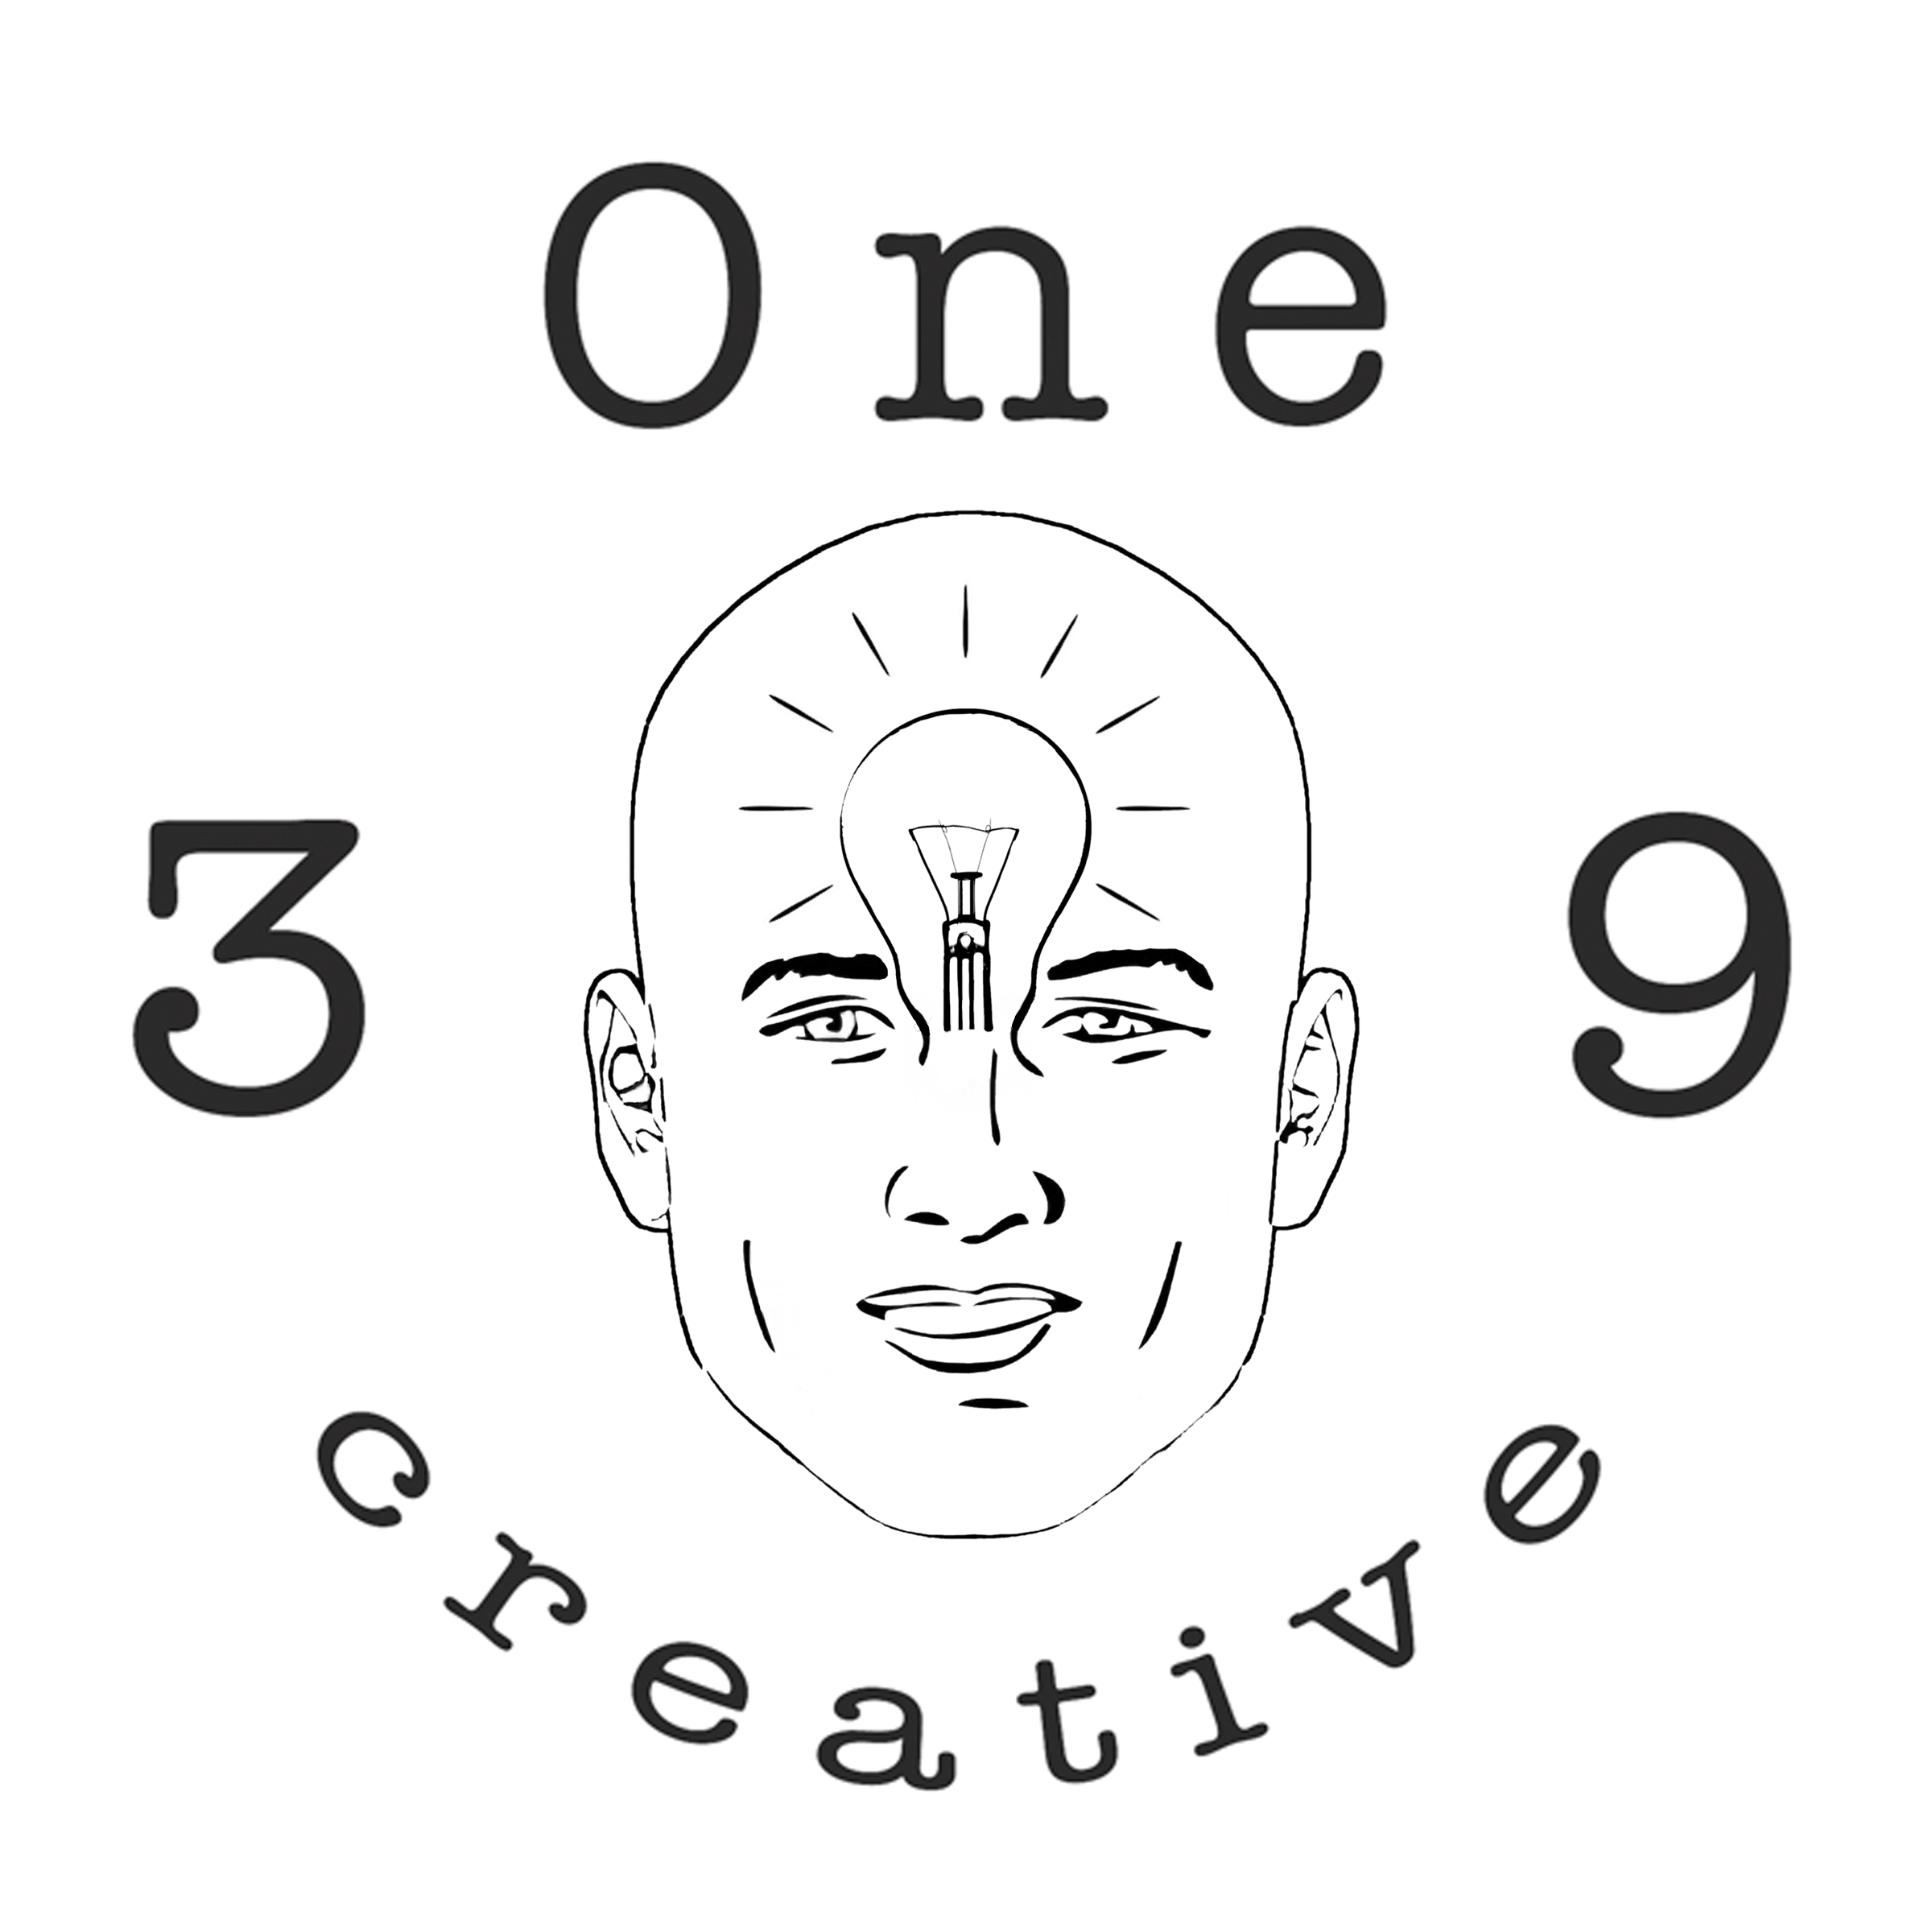 one-39 creative logo 2014.png